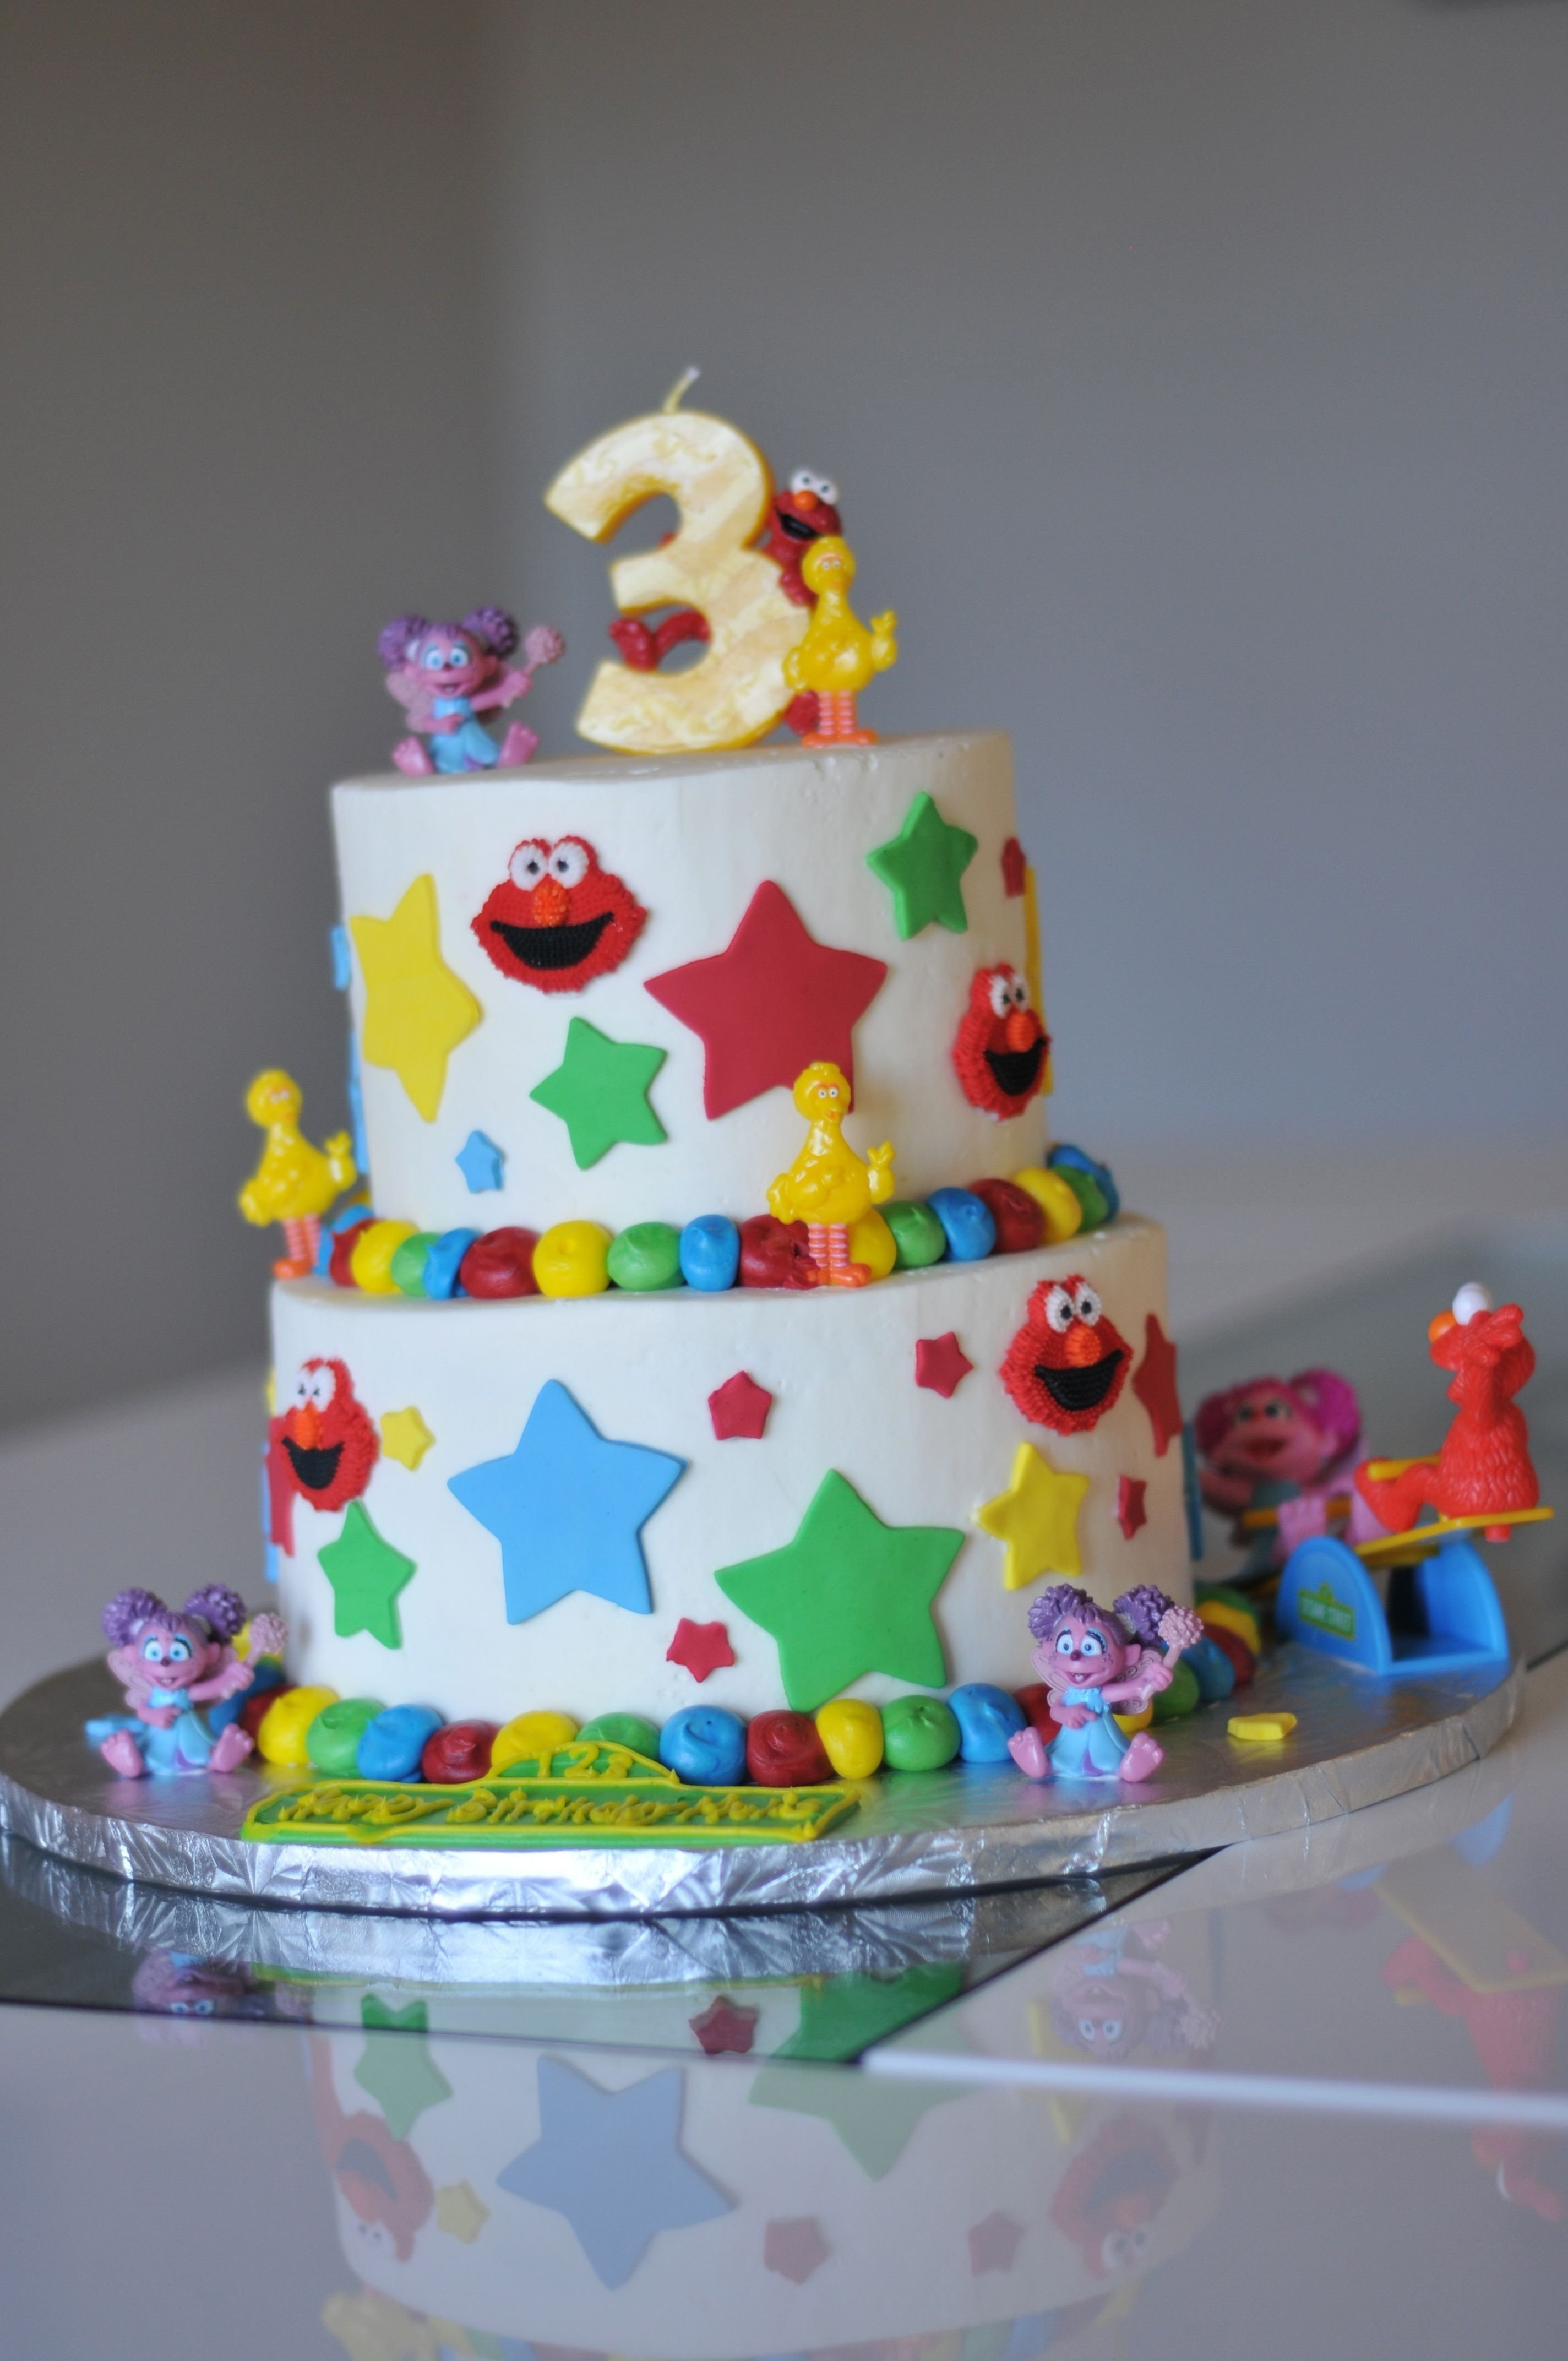 10 Most Recommended 3 Yr Old Birthday Ideas Very Cool Cake For A Year